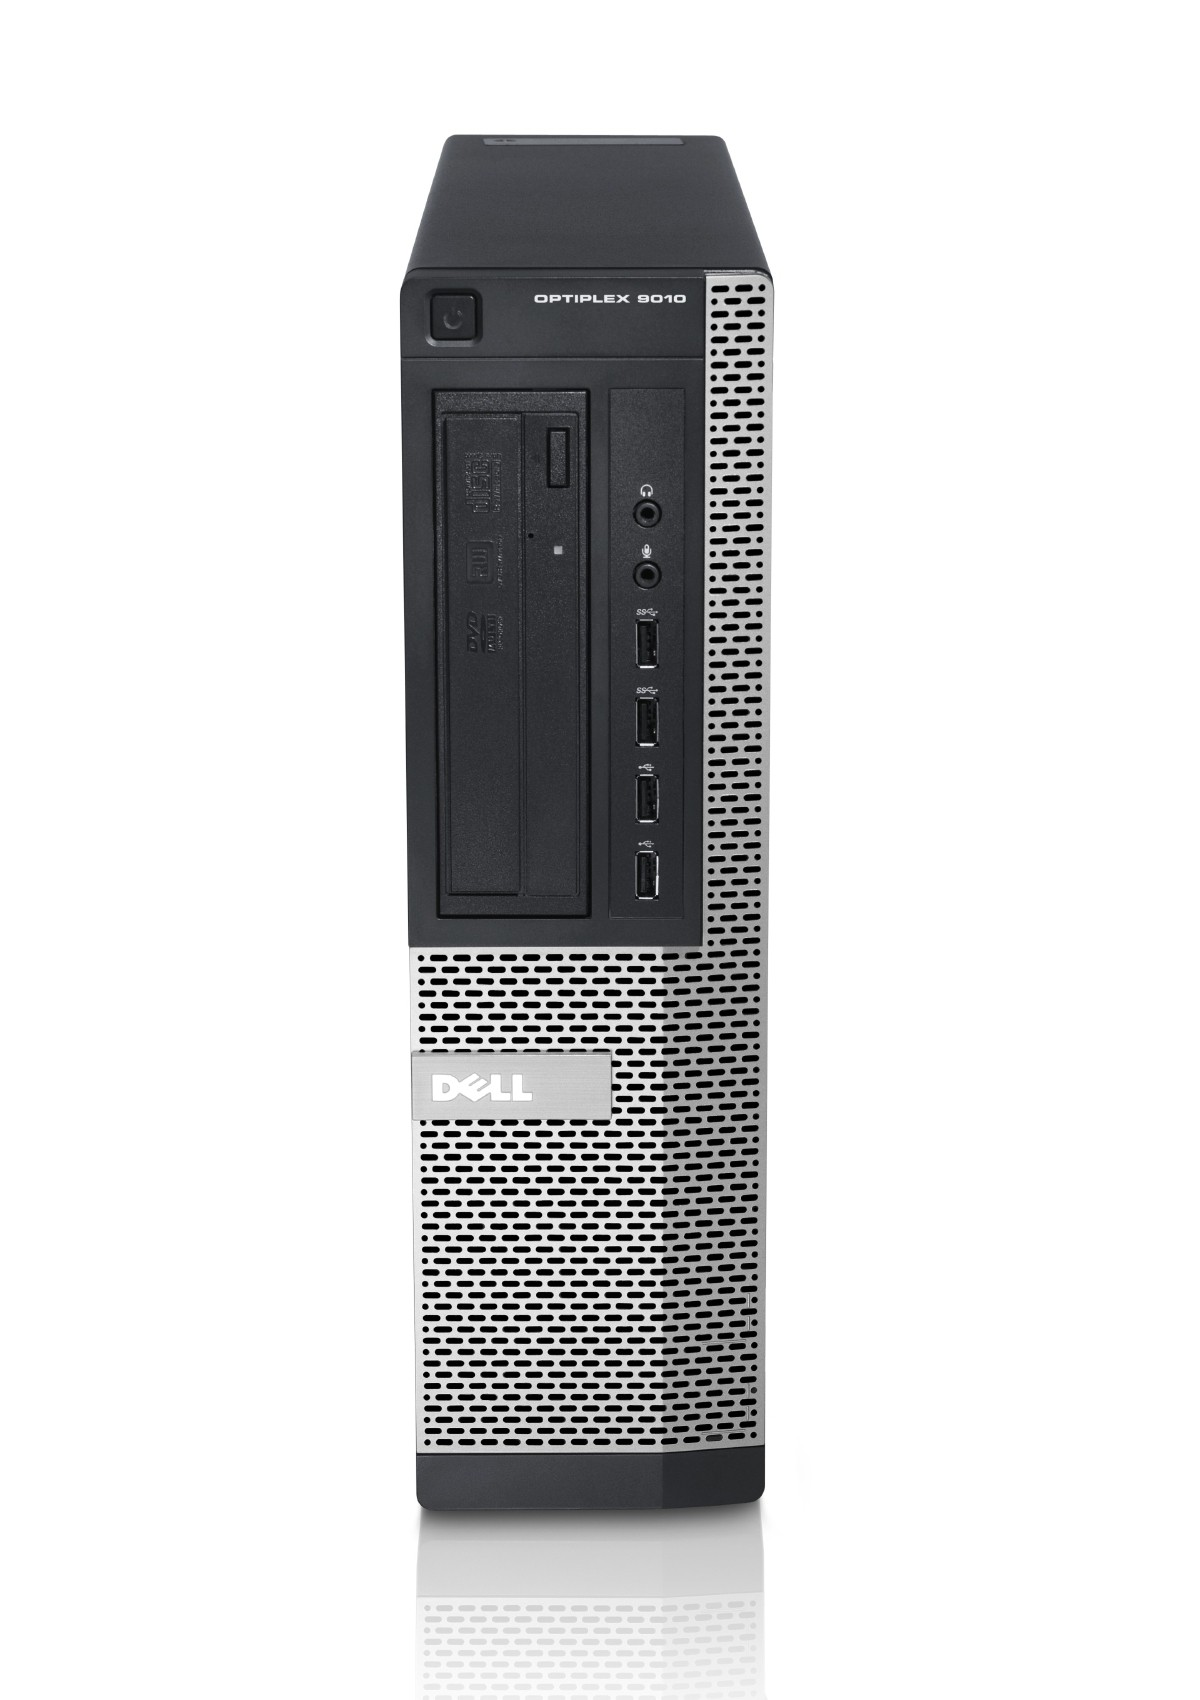 DELOPT9010DTi78128S-Dell Optiplex 9010 Desktop Intel Core i7 8GB RAM 128GB SSD DVD+RW with Windows 10 Pro Activated-image